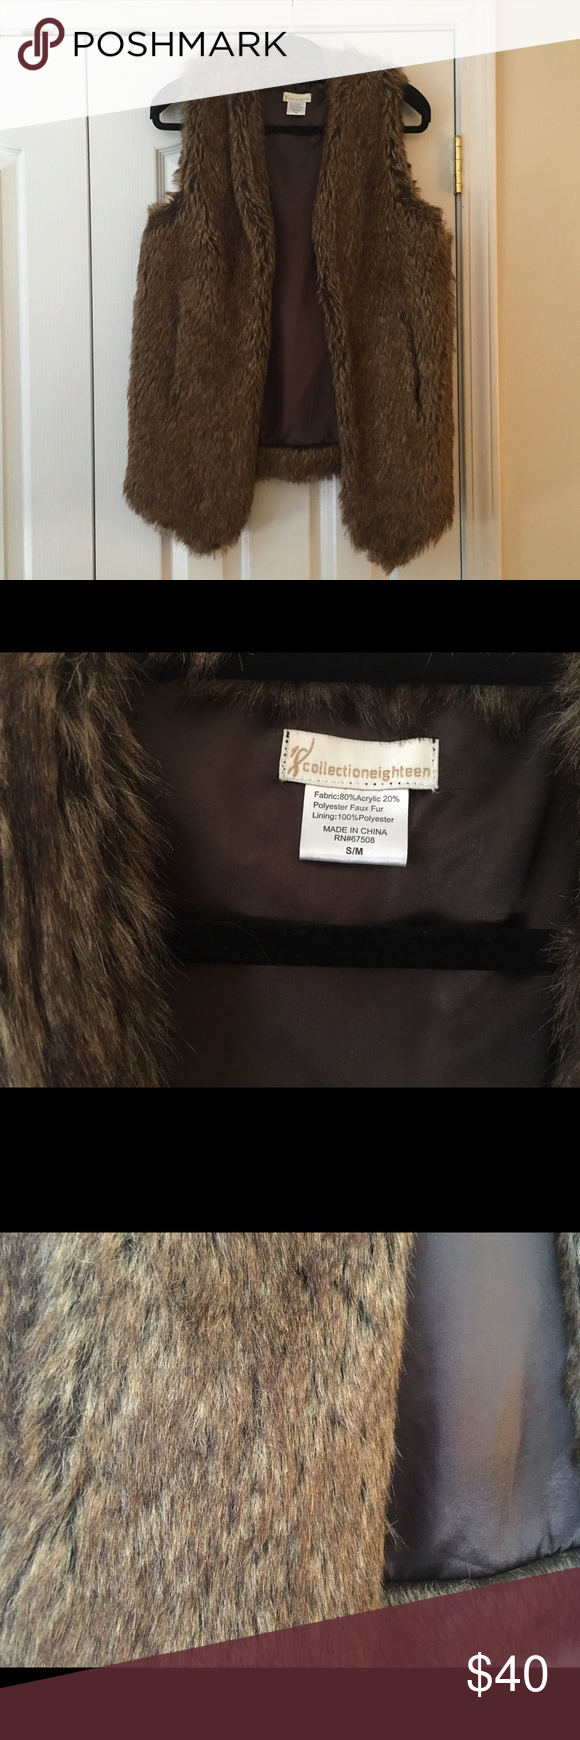 Faux fur vest Size S/M faux fur vest by Collection Eighteen. Worn only a few times, in excellent condition. Purchased at Nordstrom. CollectionEighteen Jackets & Coats Vests